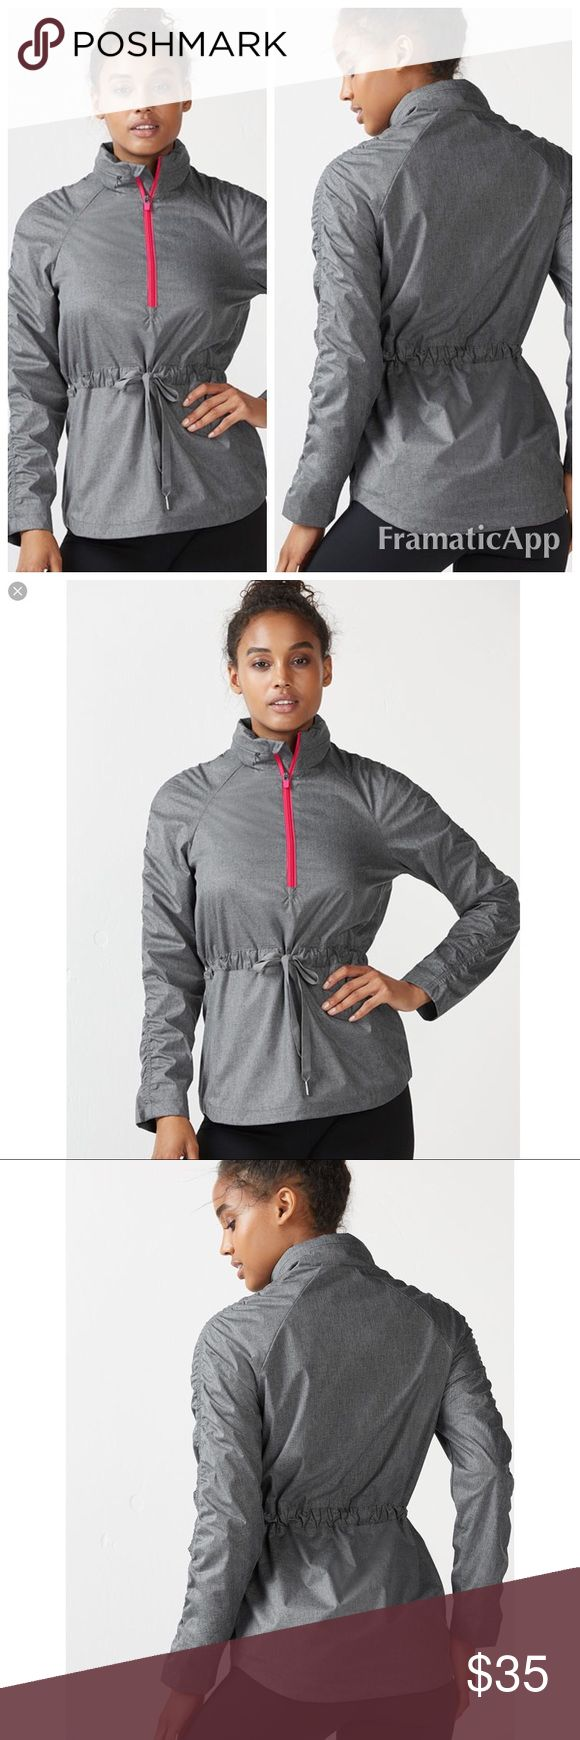 NEW Light Reflecting Water Resistant Jacket Light reflective fabric and hidden hood that's stashed within a zippered collar, 100% Polyester, Water-Resistant Ripstop Fabric, Mesh Lining, Invisible Side Zipper Pockets Fabletics Jackets & Coats